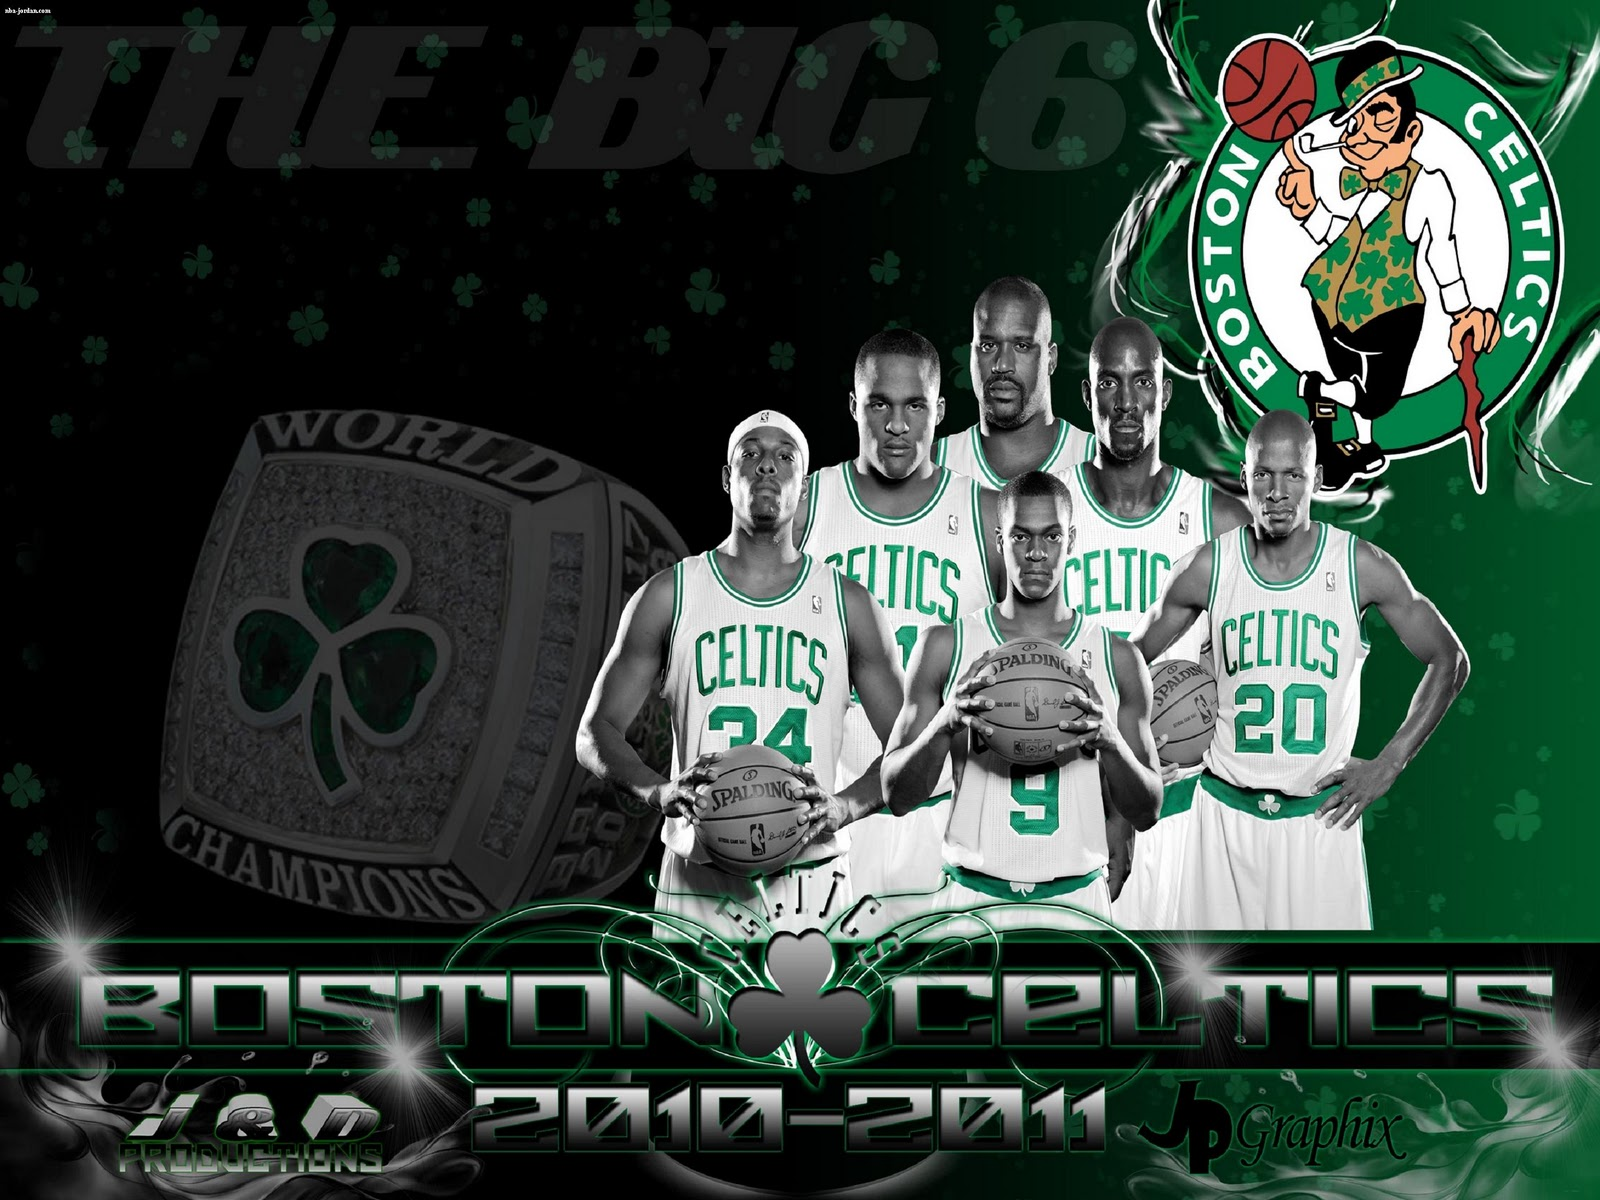 http://3.bp.blogspot.com/-sUJKhrbqBlY/TsqgwUVvMdI/AAAAAAAADlo/dn-ns7vWe_M/s1600/Boston-Celtics-Wallpaper.jpg